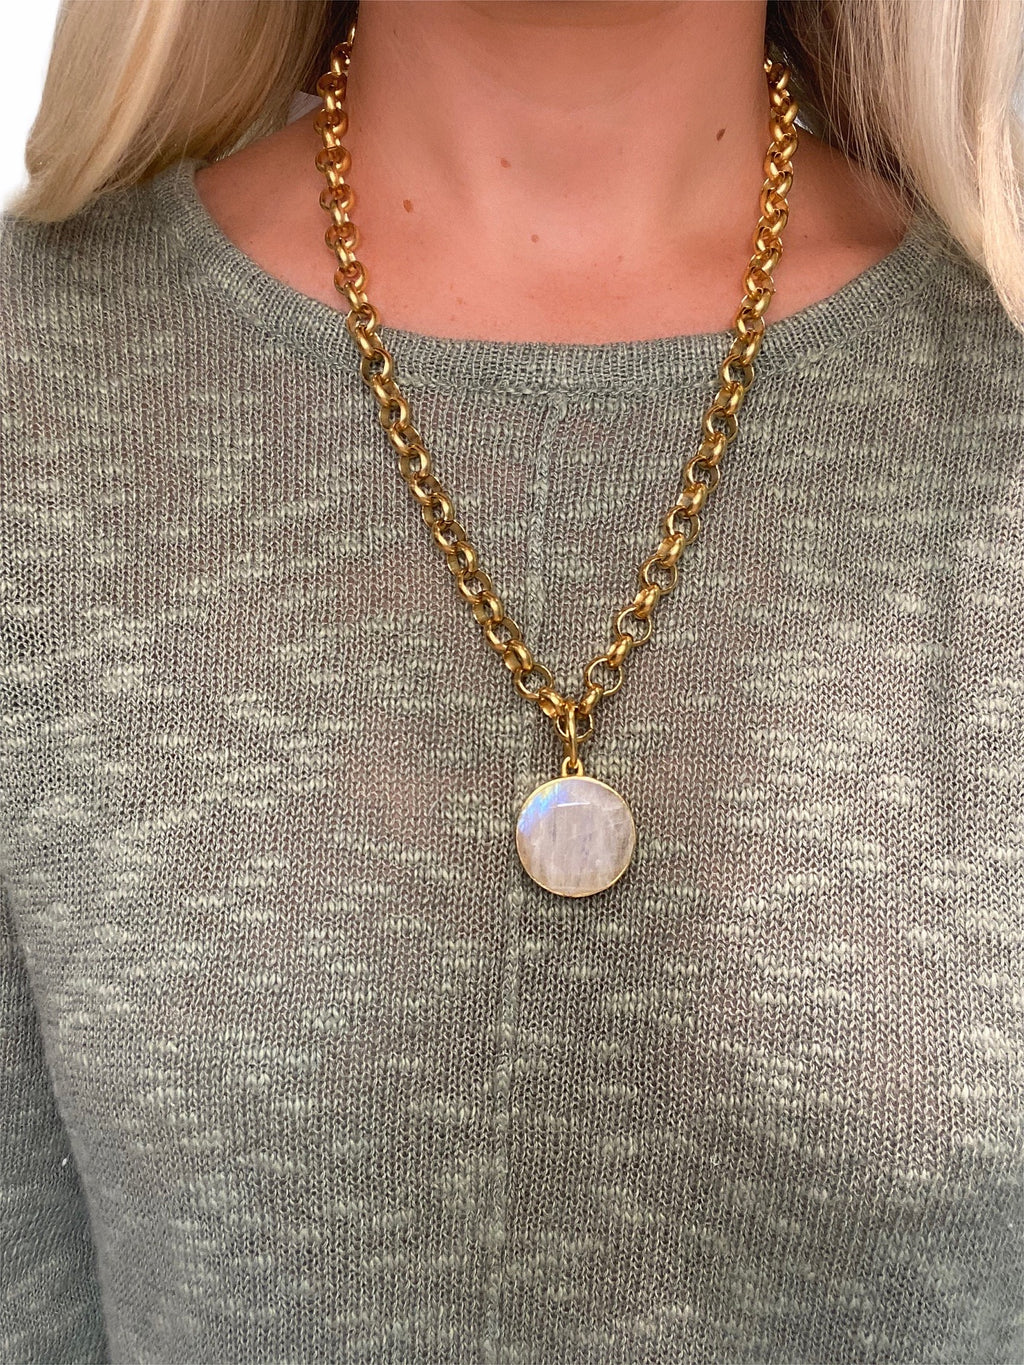 Moonstone Pendant Chain Necklace in Gold